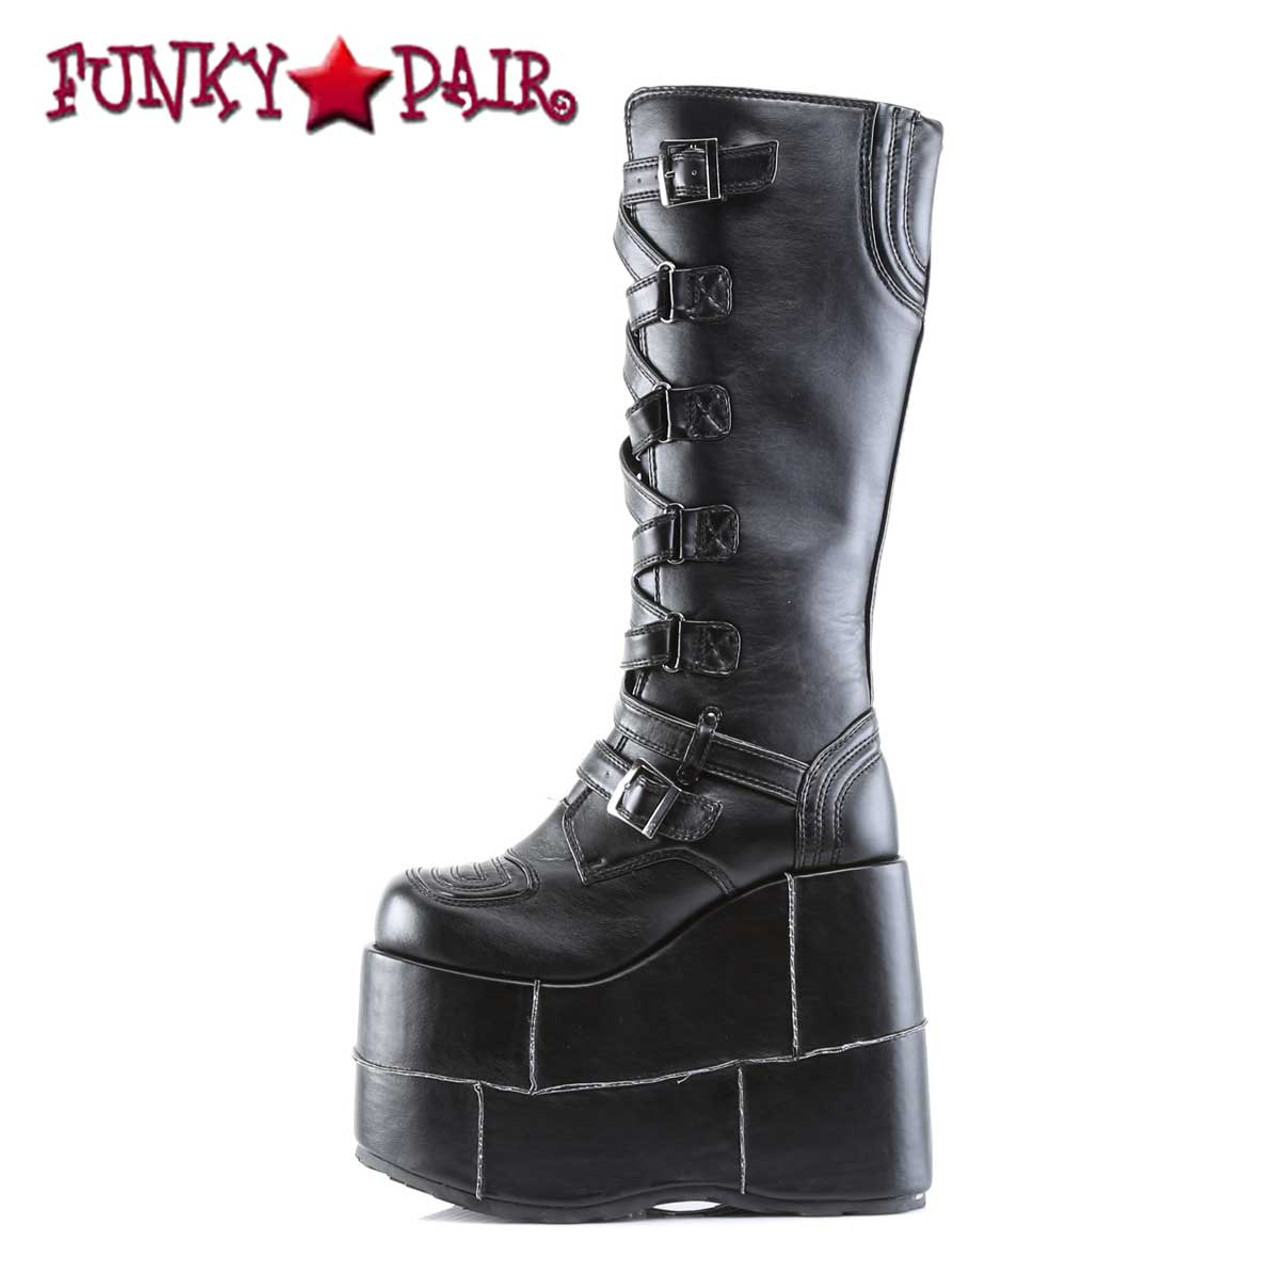 STACK-308 Men's Goth Cyber Punk Knee Boots